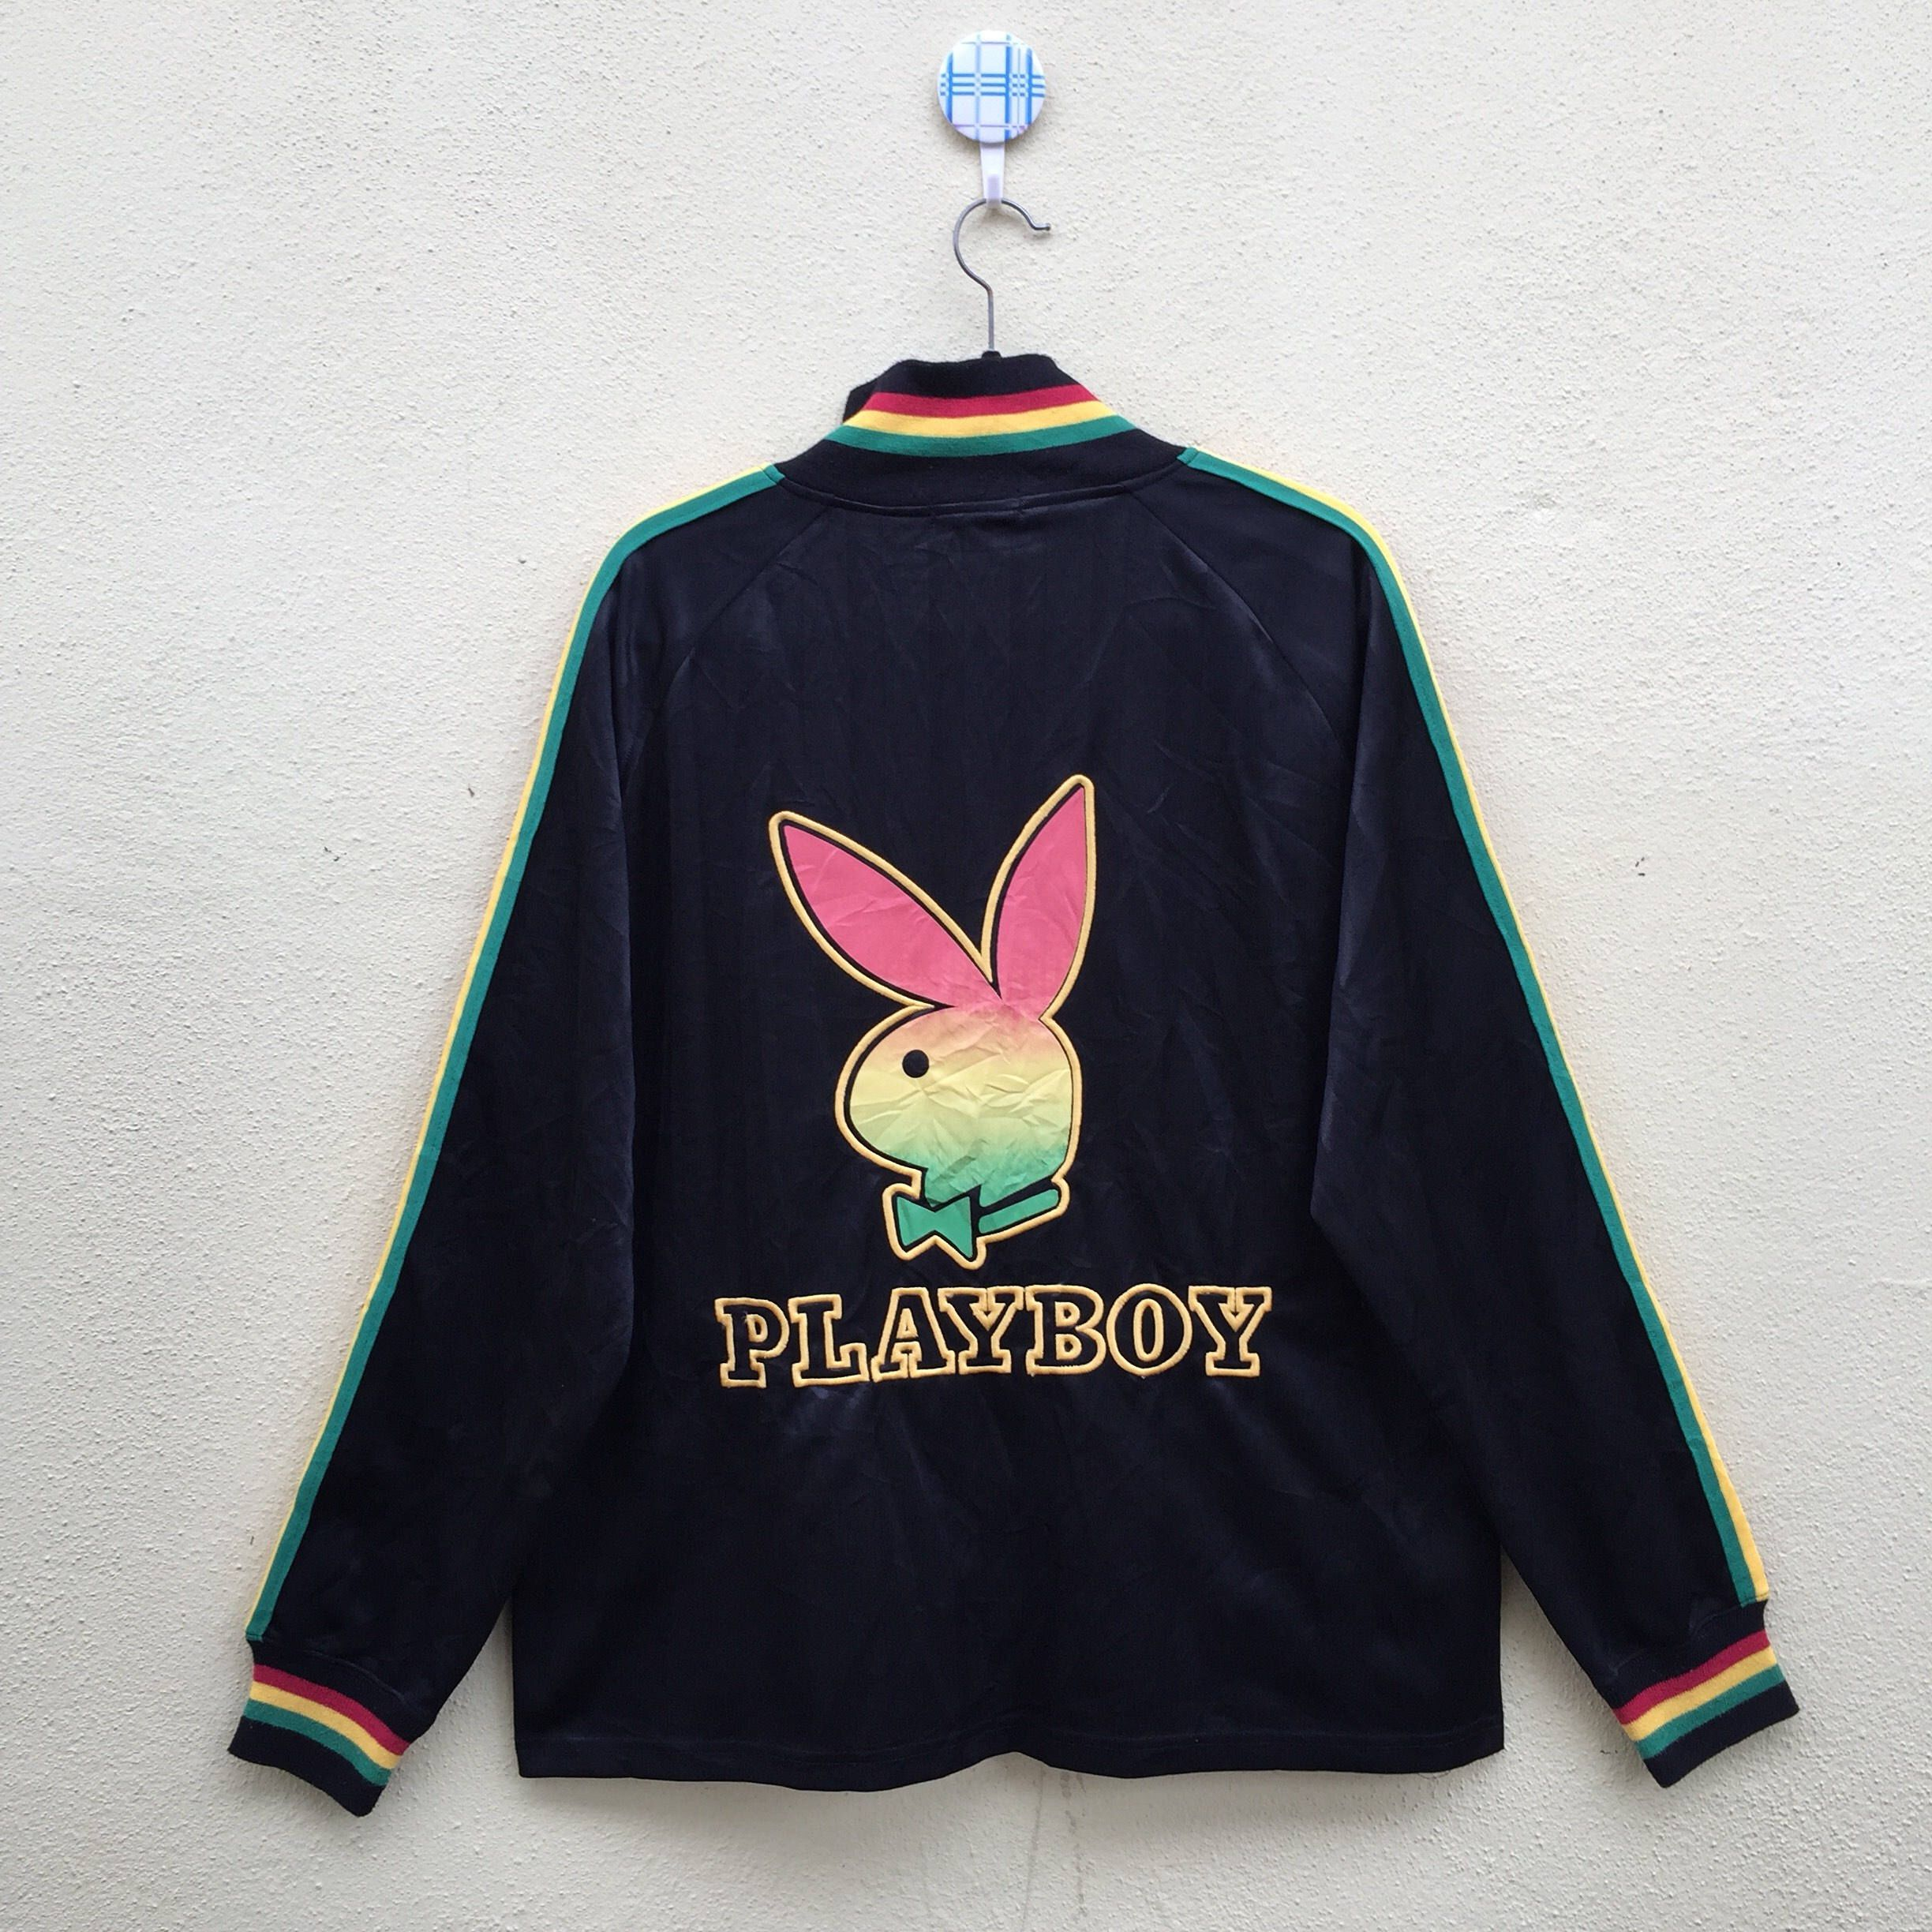 20% OFF Vintage PLAYBOY COLLECTION Zipper Sweatshirt Pullover Big Logo Spell Out Embroidered Size Large NVj2g8eHed